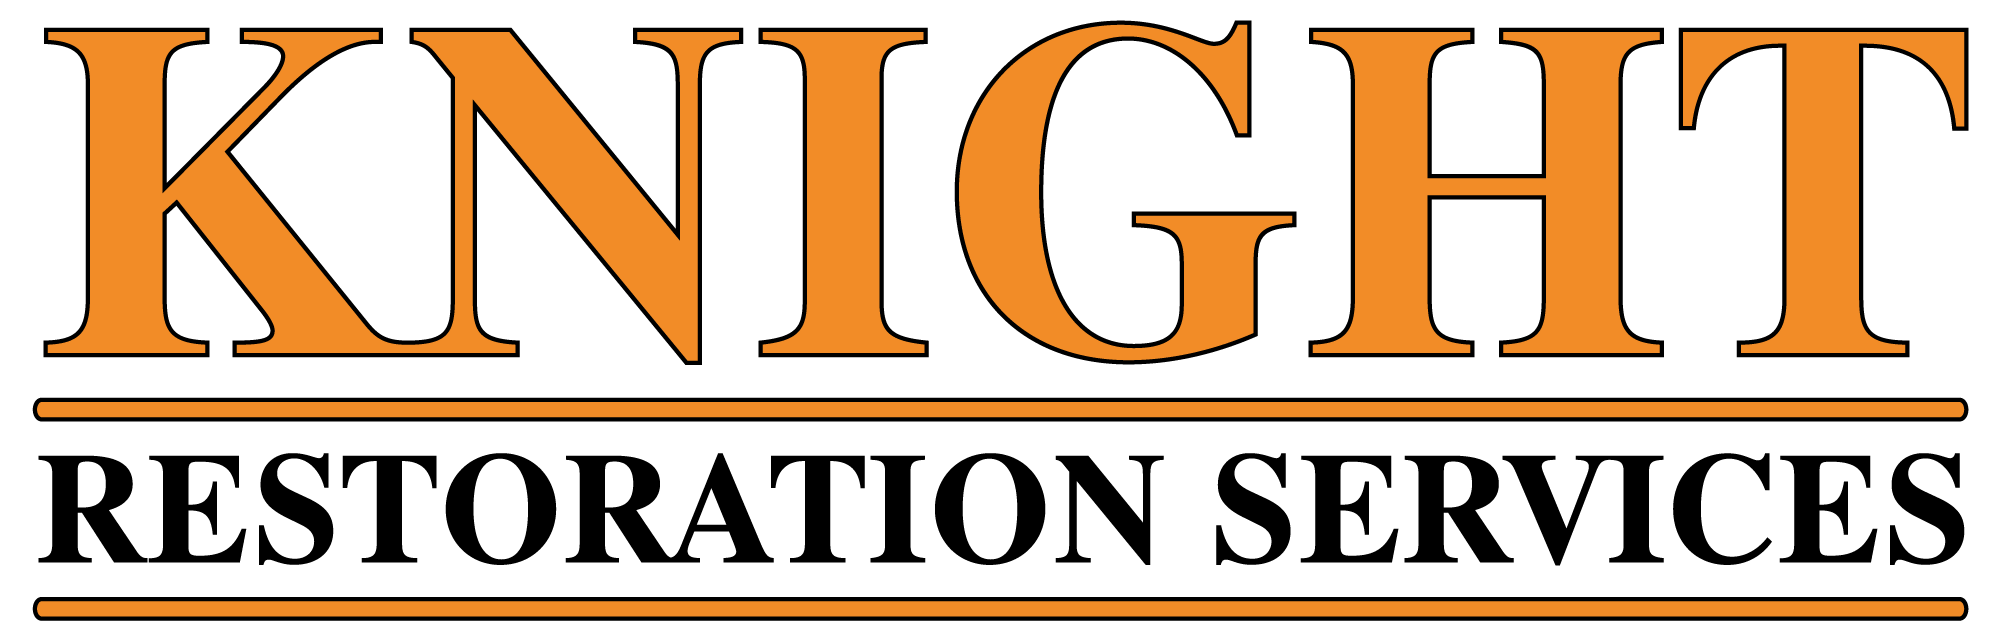 Knight Restoration Services logo